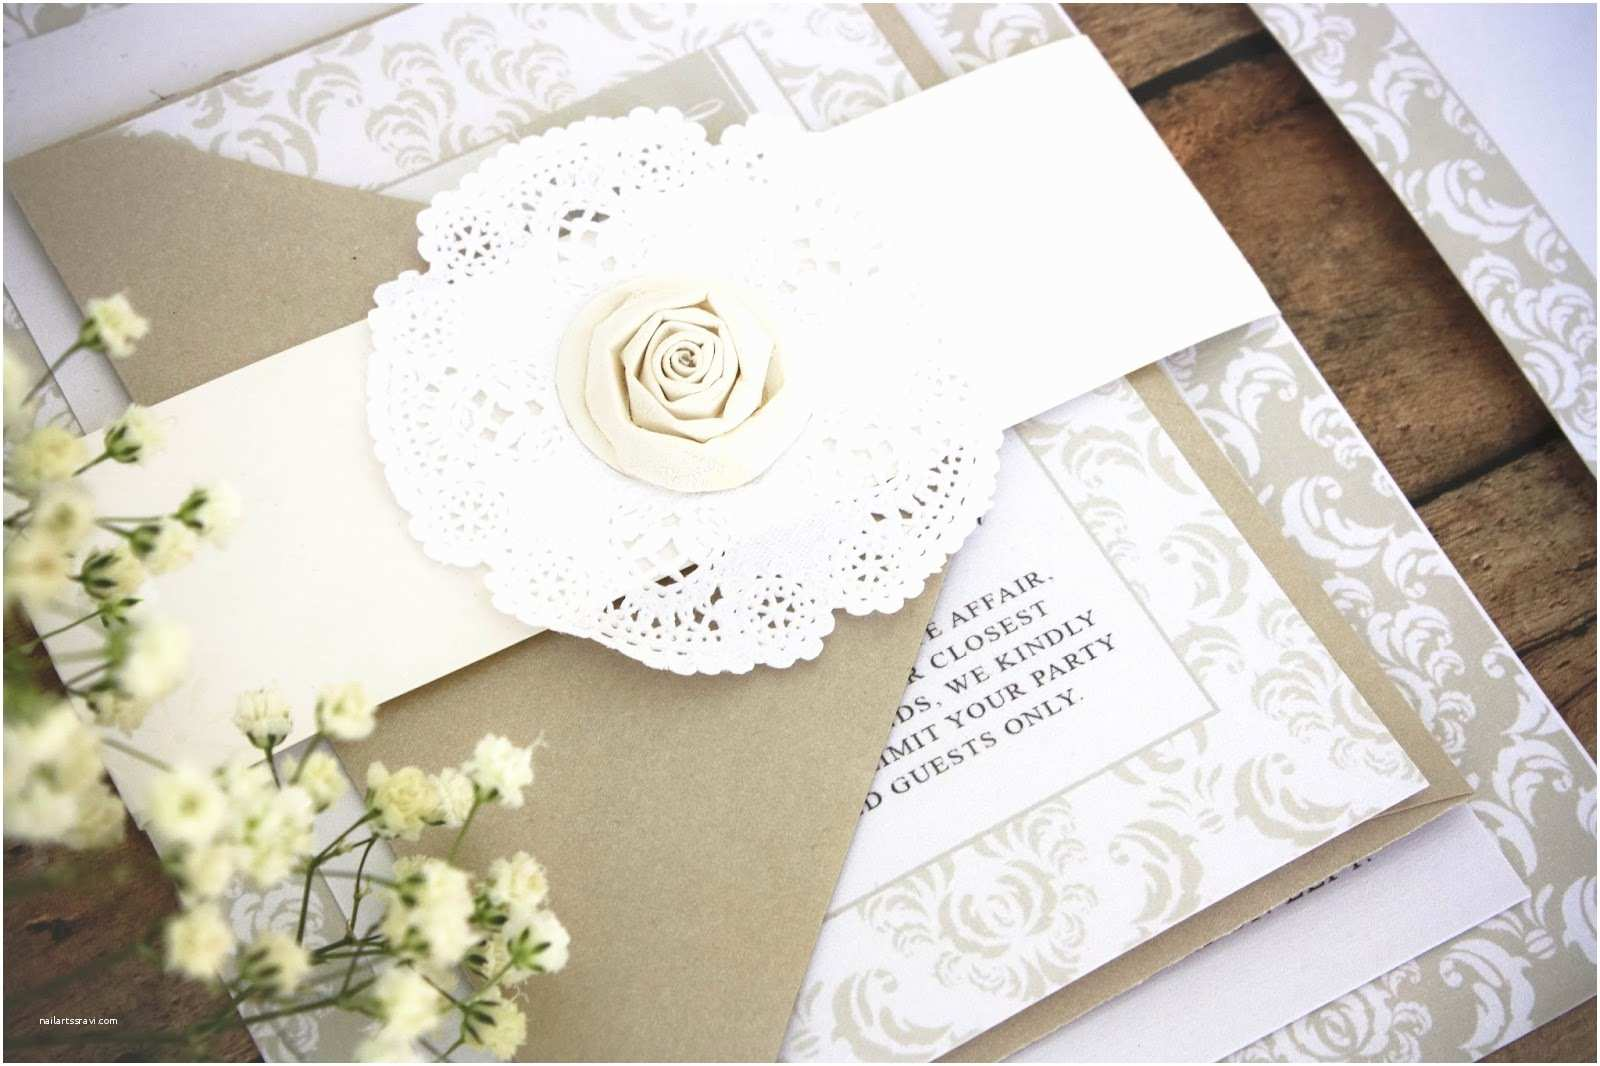 How to Print Your Own Wedding Invitations Design Your Own Wedding Invitation